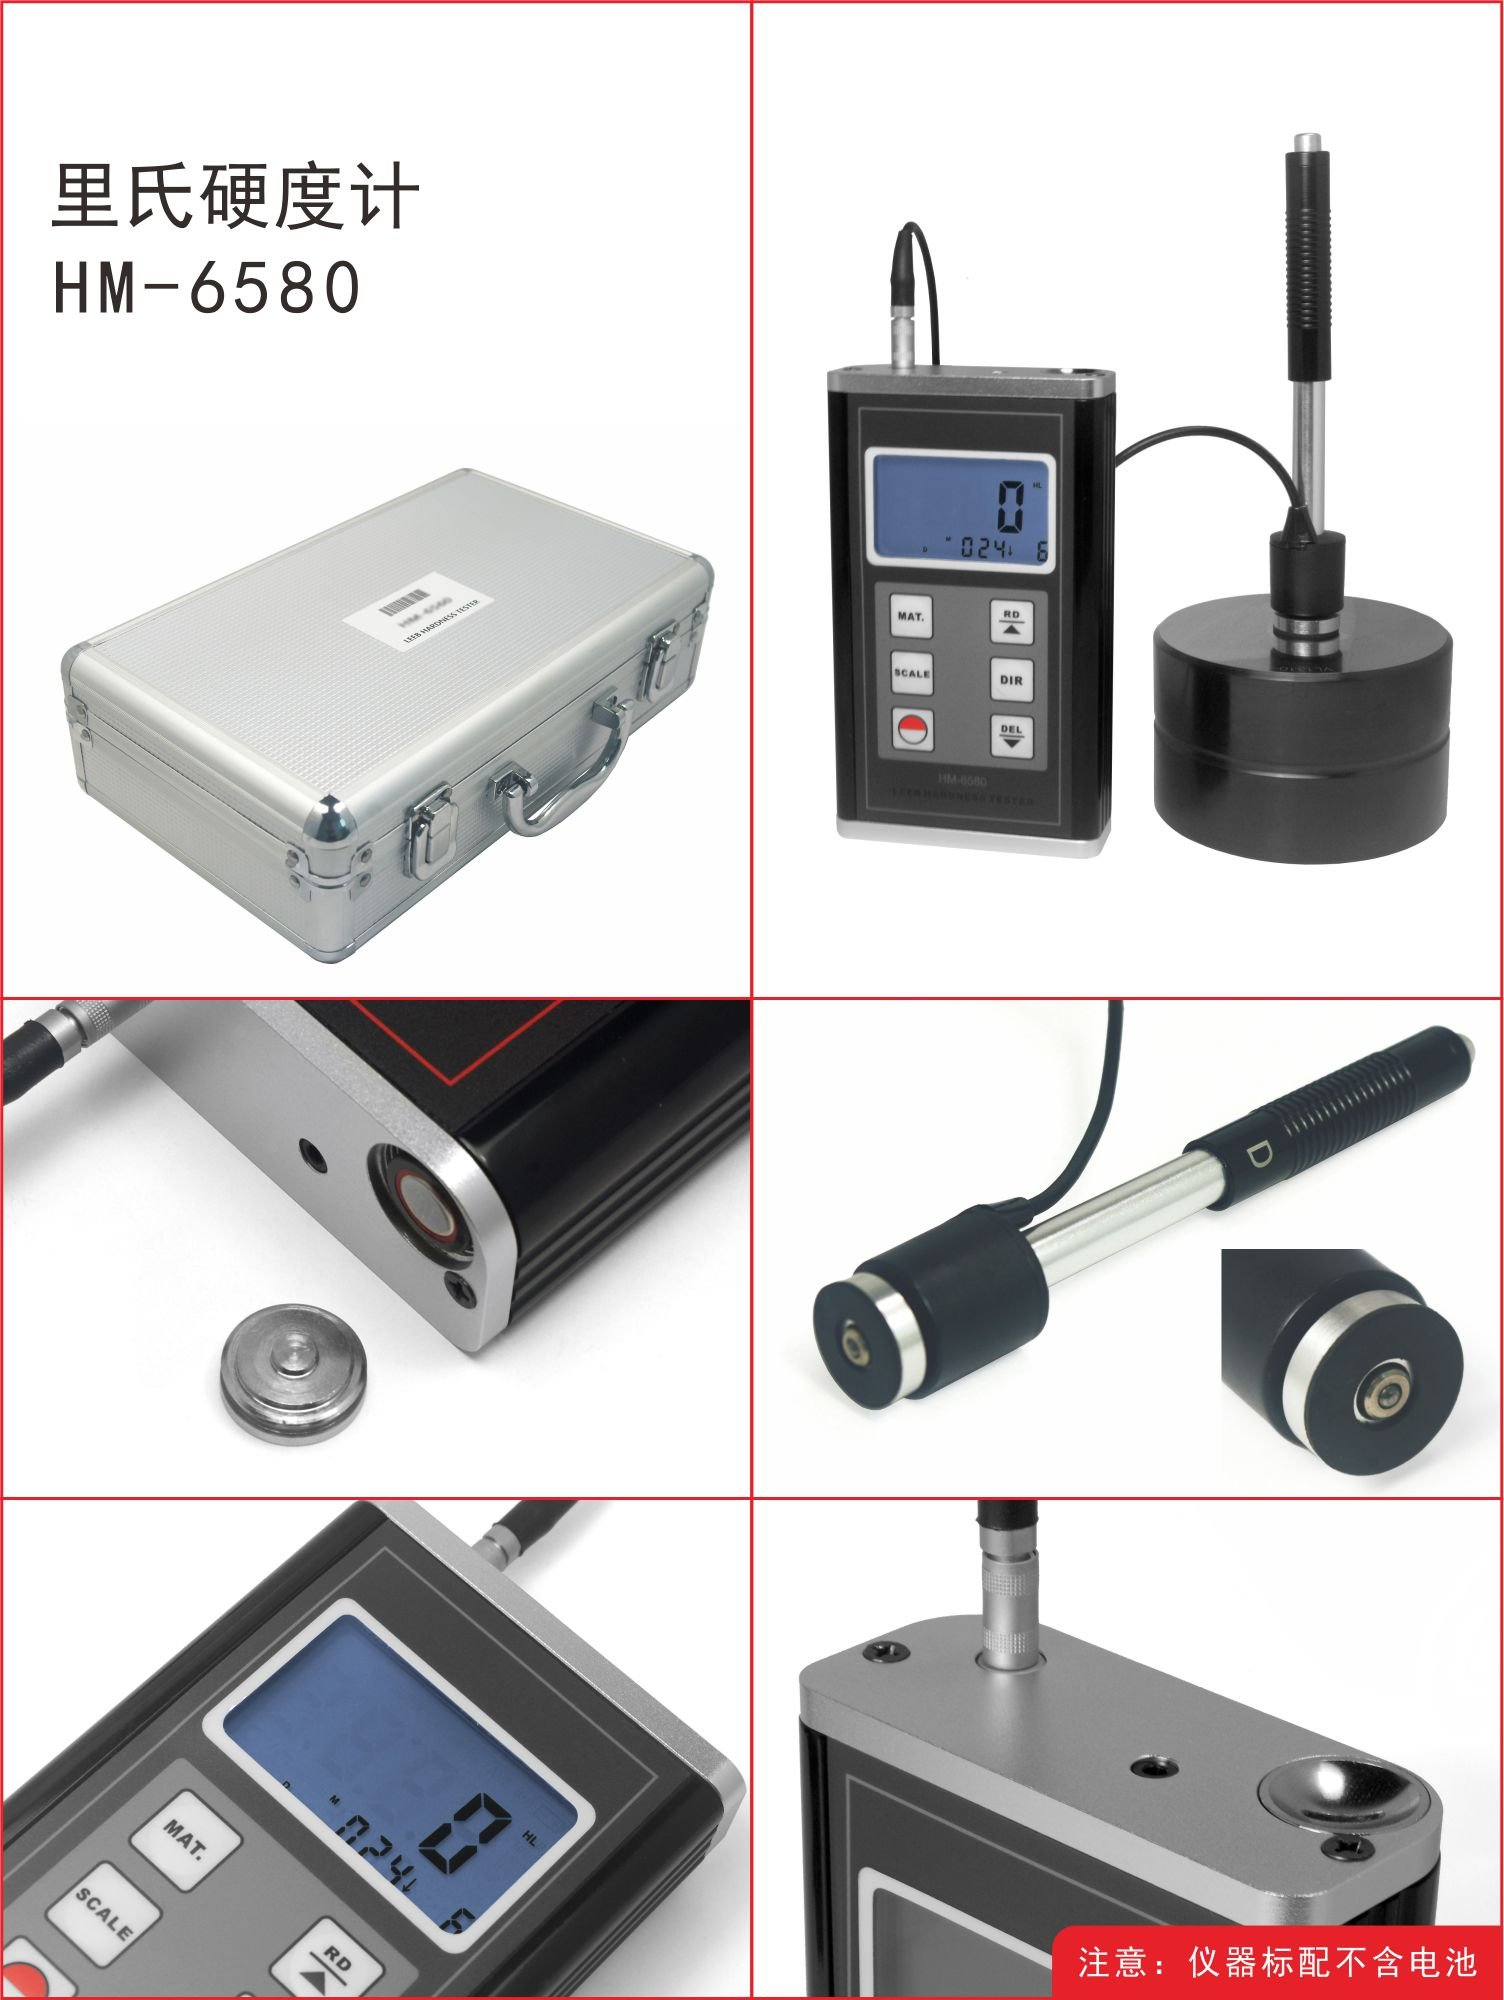 BYQTEC HM-6580 Portable Leeb Hardness Tester Meter with 170-960 HLD Metals Durometer Instrument HRB HRC HV HB HS HL for Solid Aluminum Alloy Housing